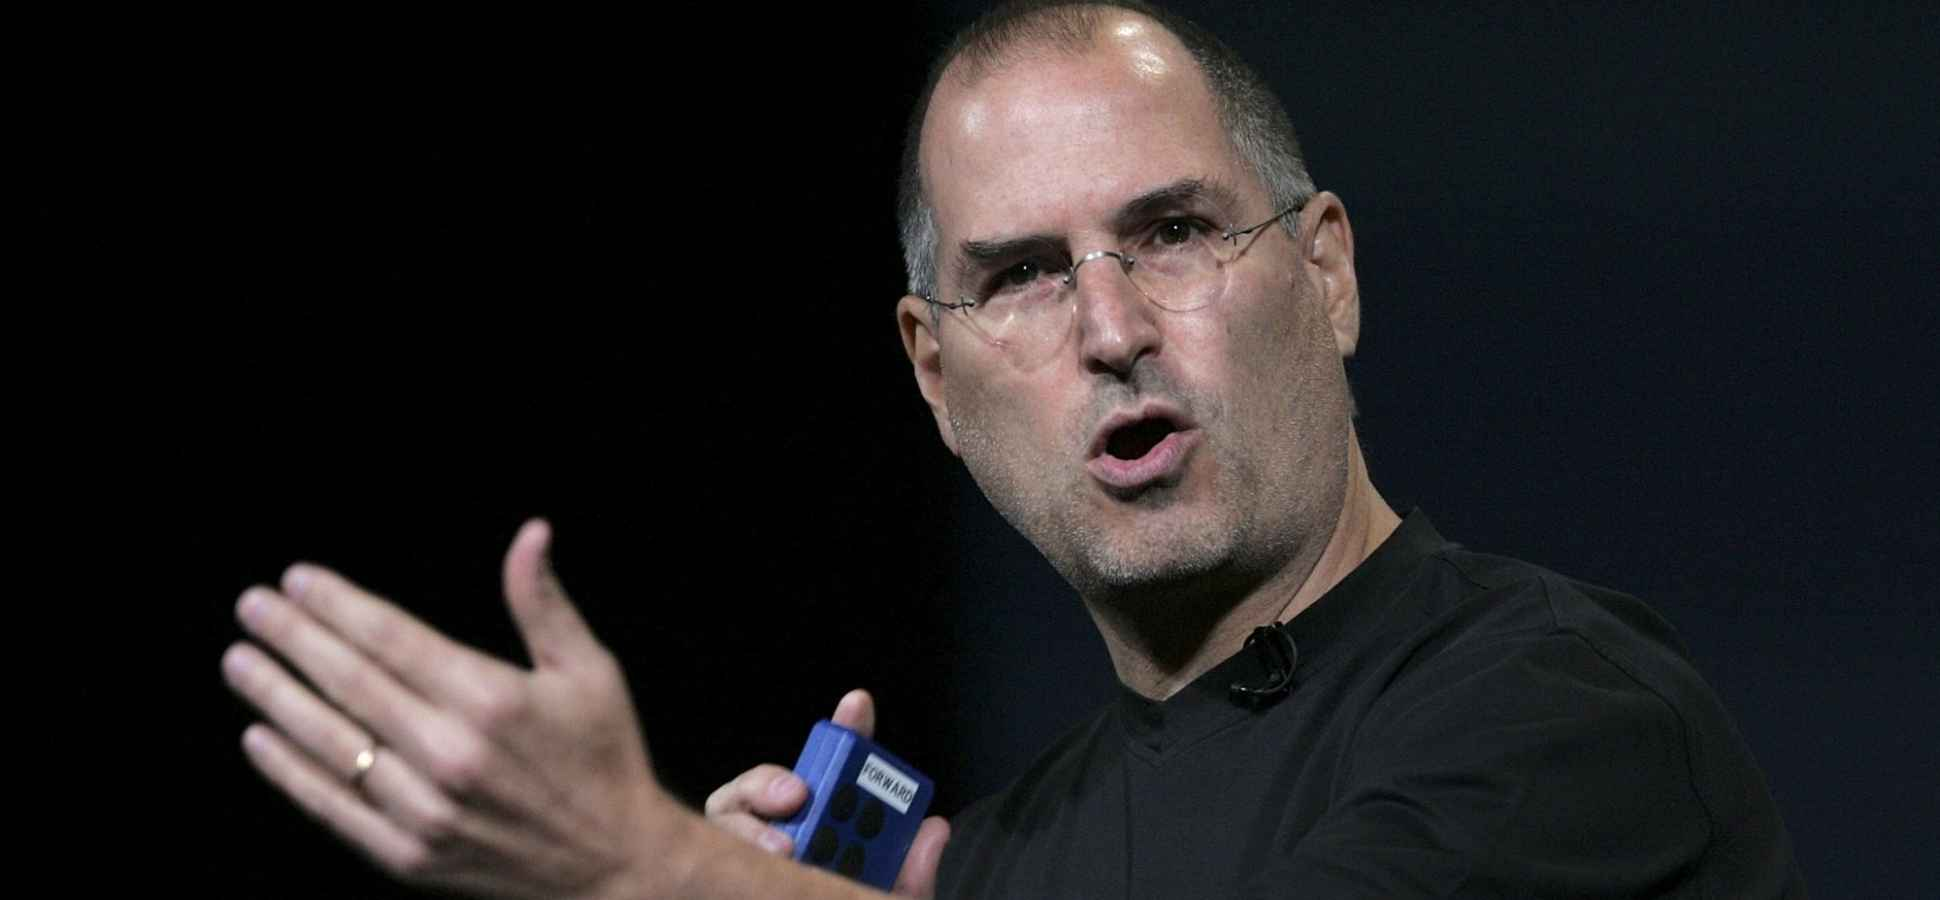 Steve Jobs Believed Everyone Should Learn This 1 Skill